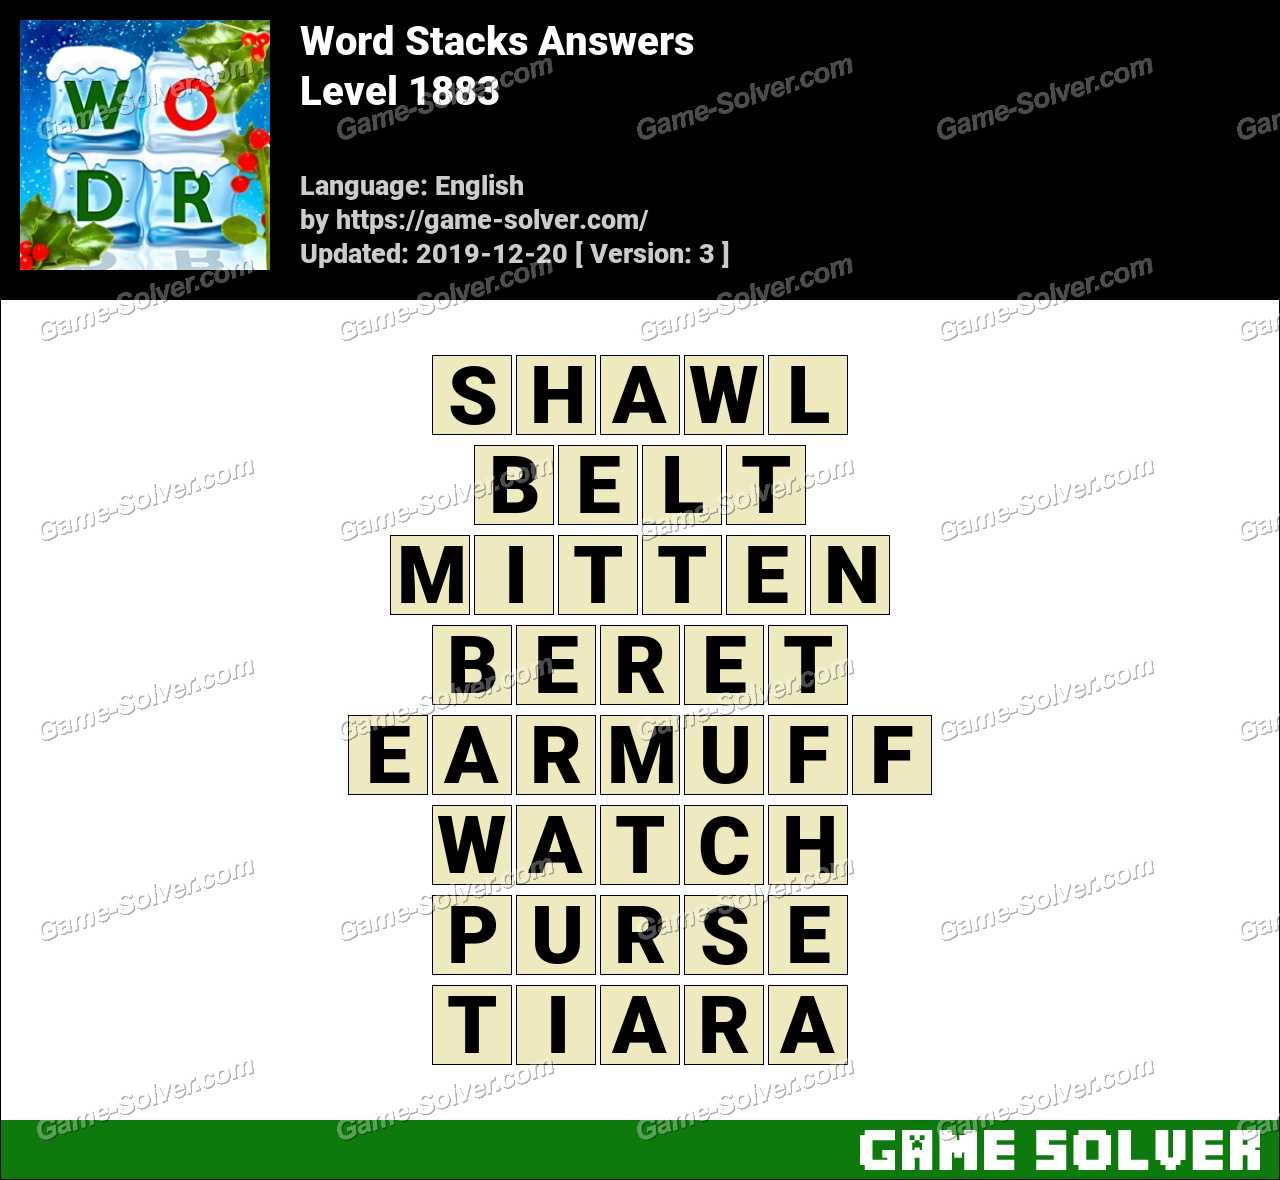 Word Stacks Level 1883 Answers